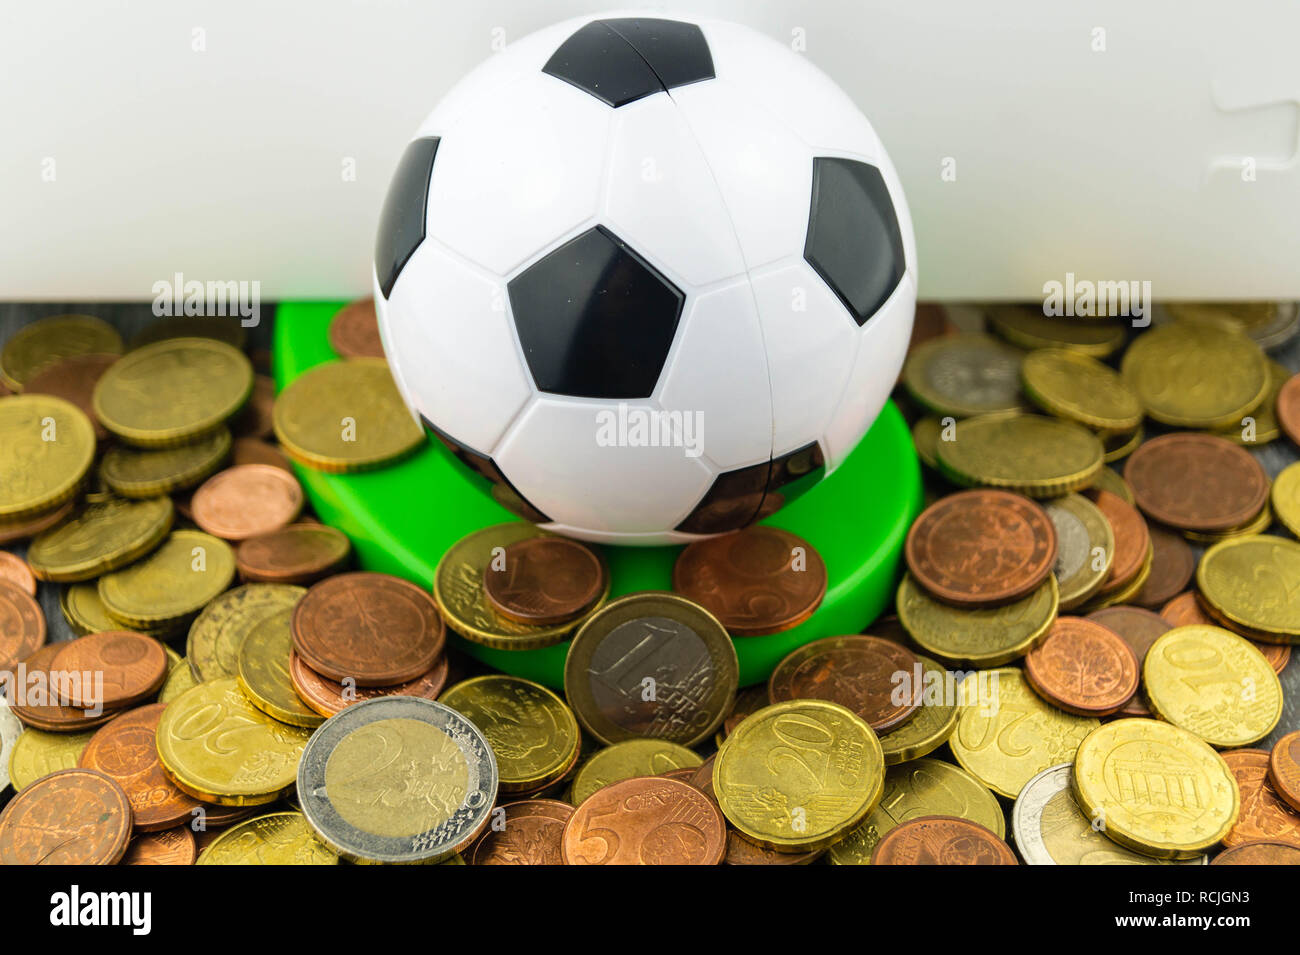 The Soccer Players changes the club for much money - Stock Image